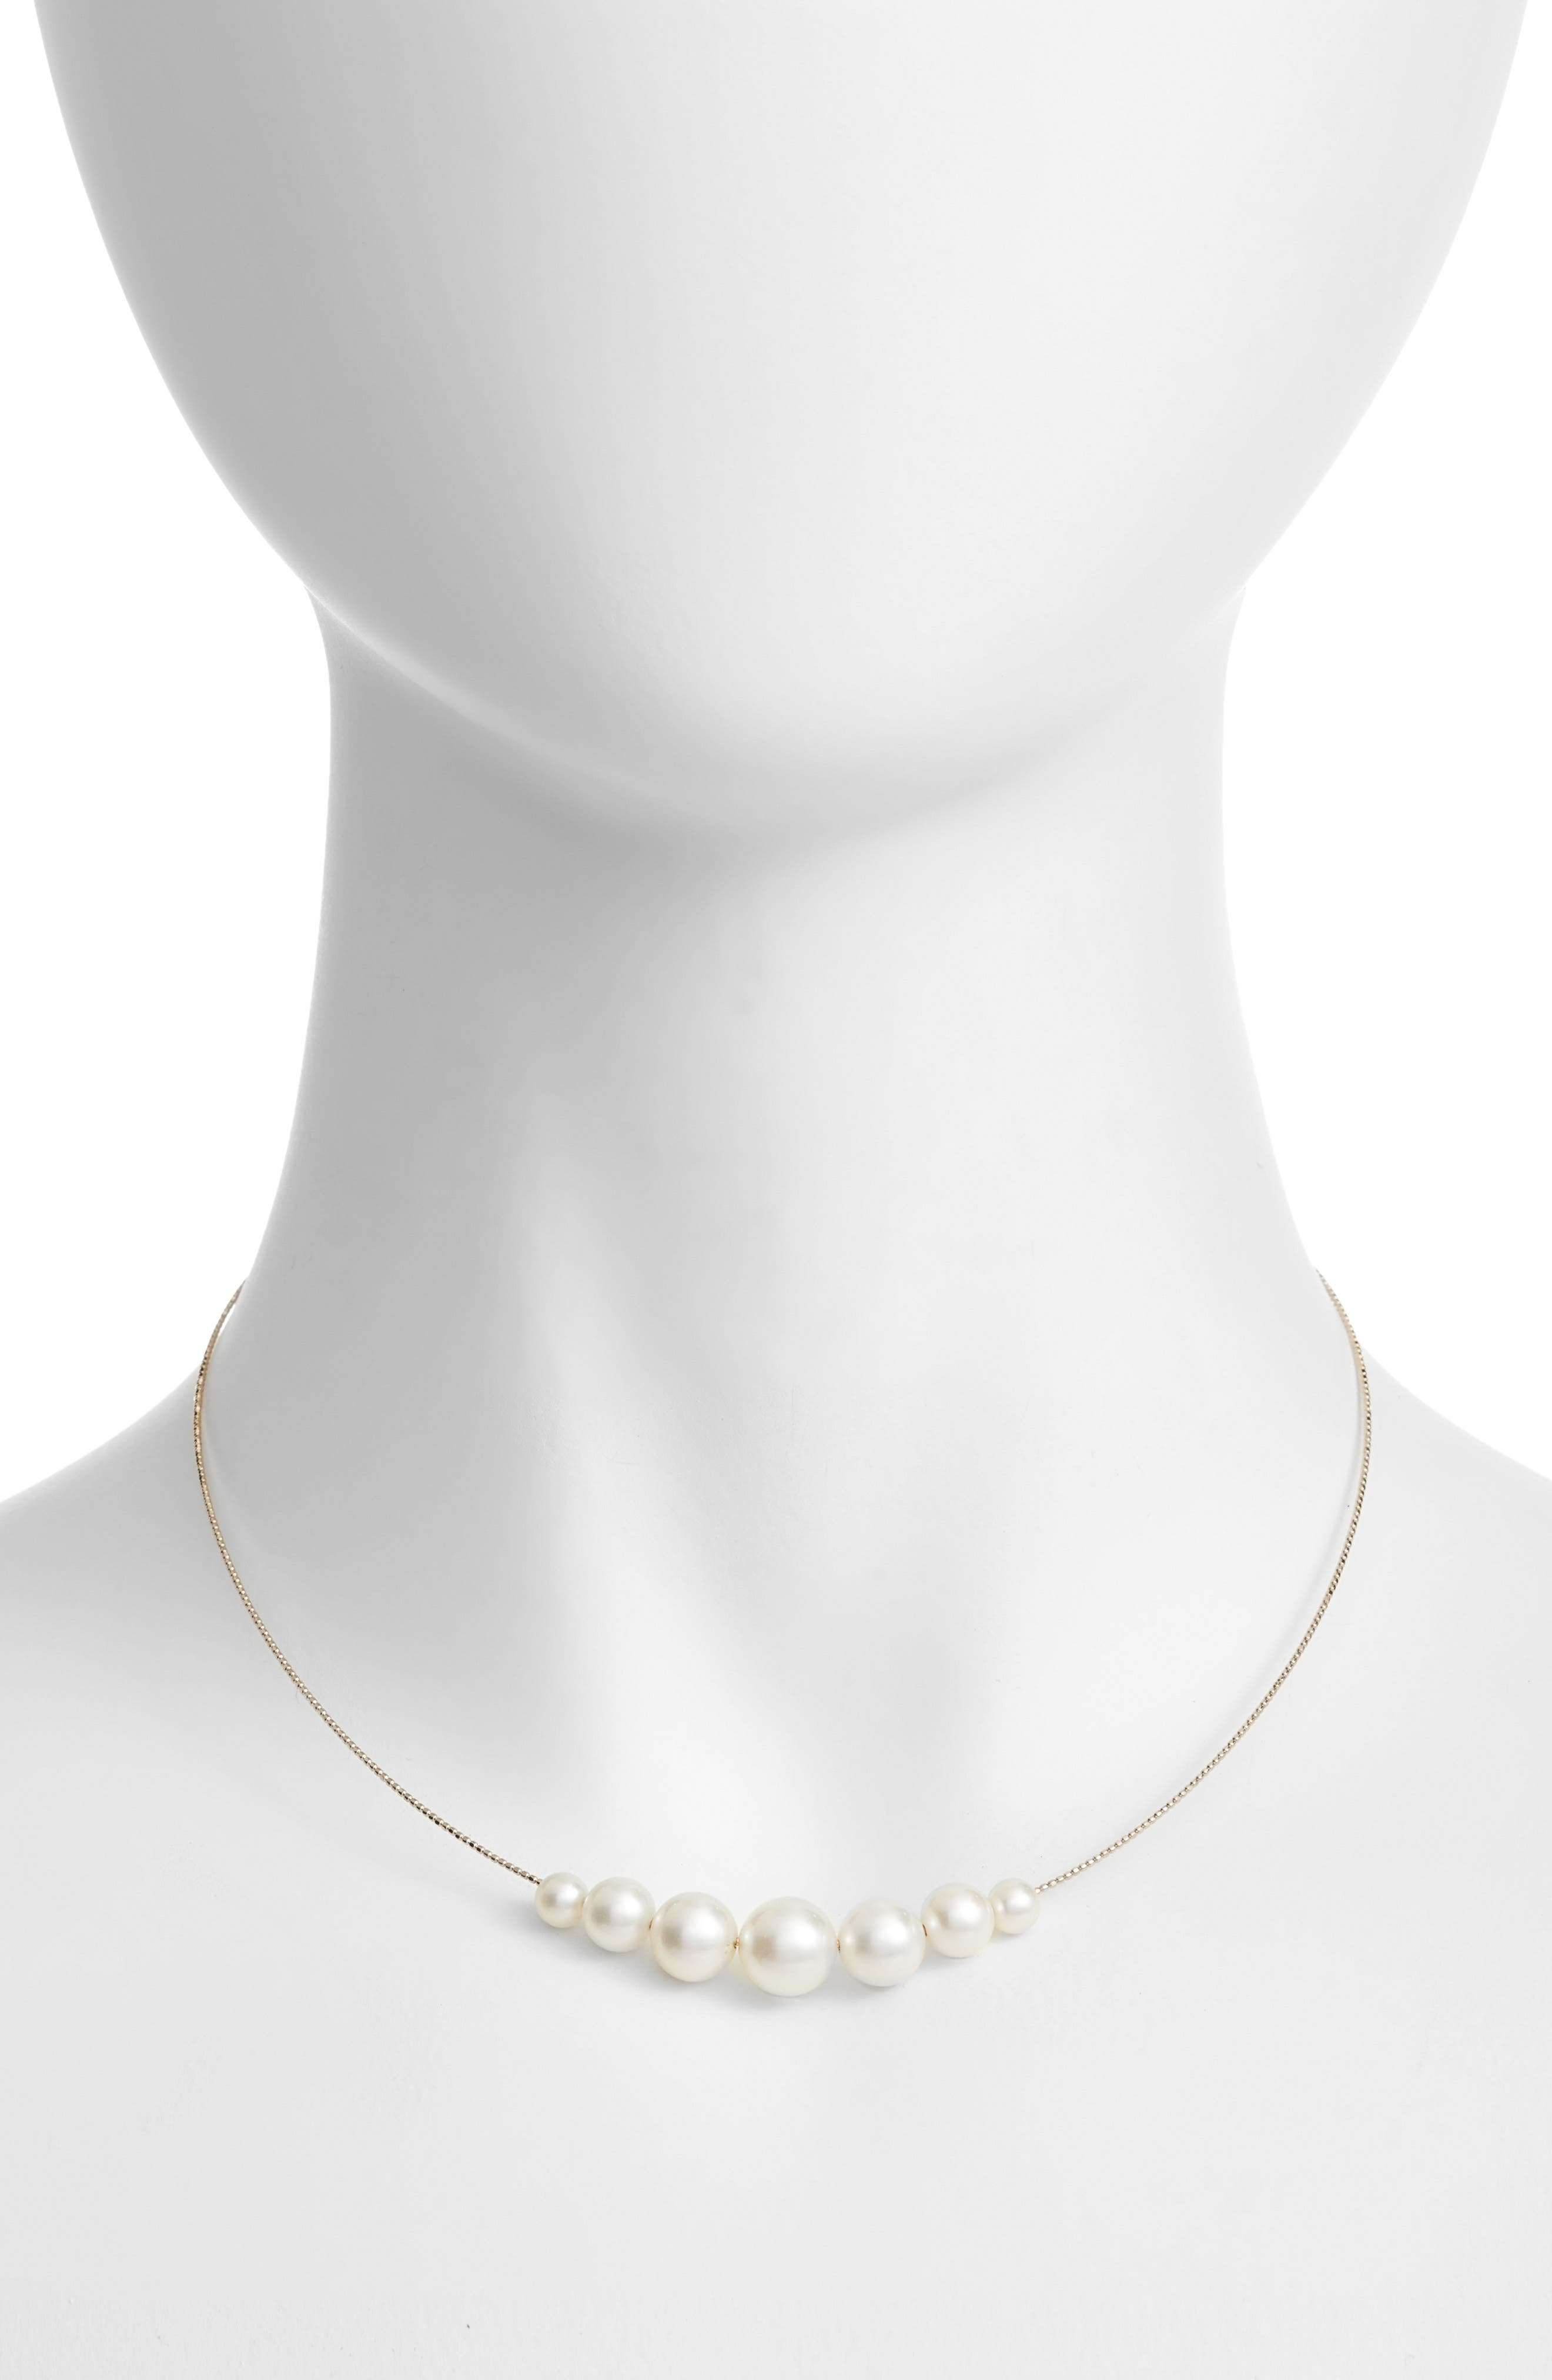 Pearl Choker Necklace,                             Main thumbnail 1, color,                             YELLOW GOLD/ WHITE PEARL